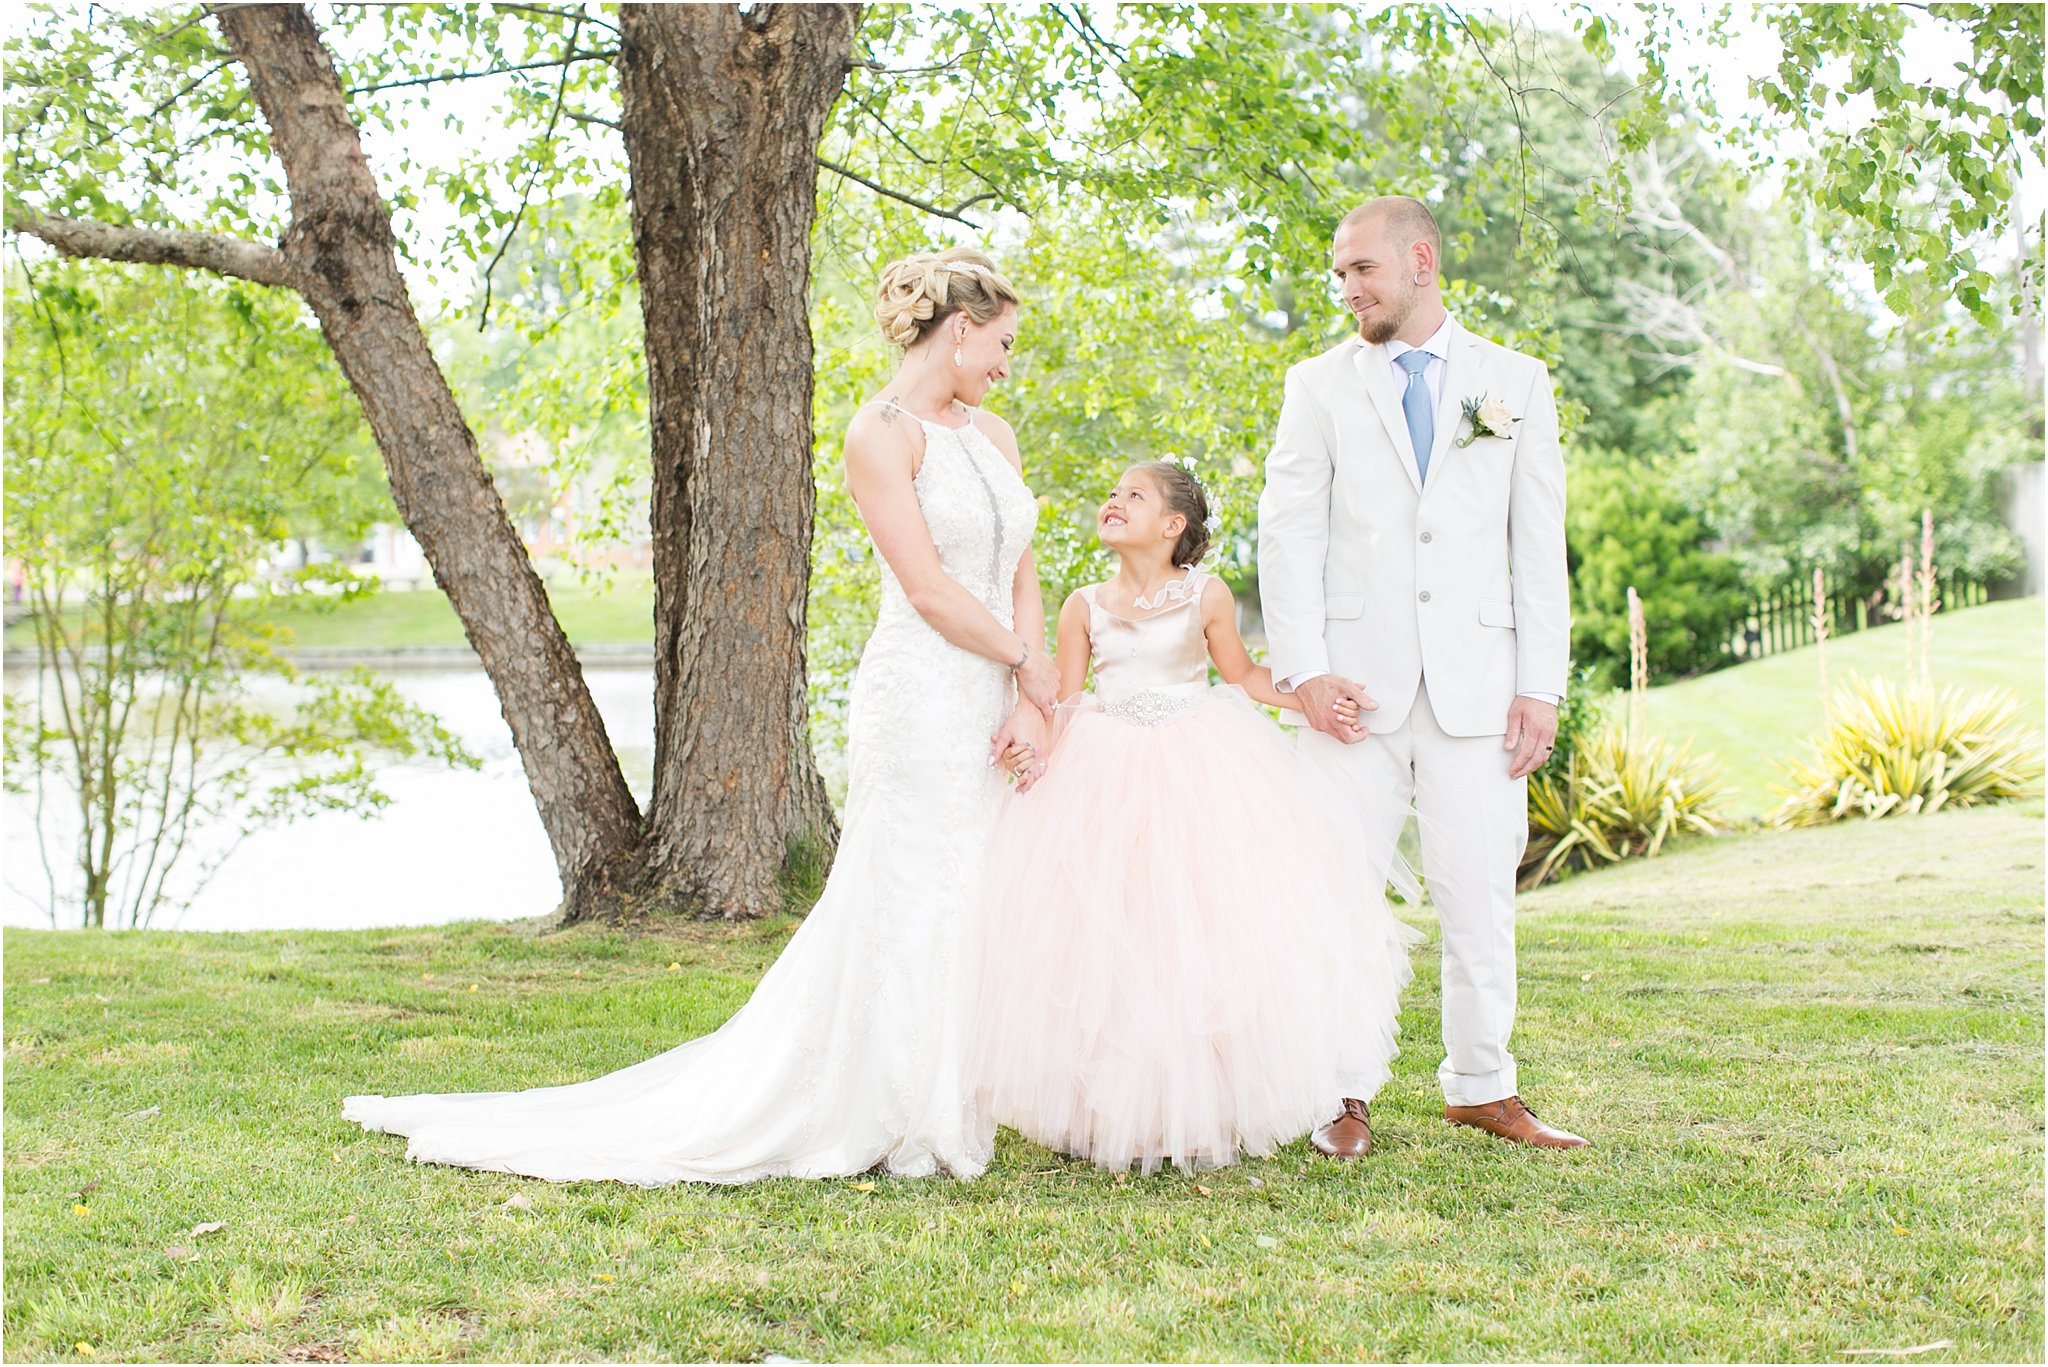 jessica_ryan_photography_virginia_virginiabeachweddingphotographer_studioIdo_backyardwedding_waterfrontwedding_1690